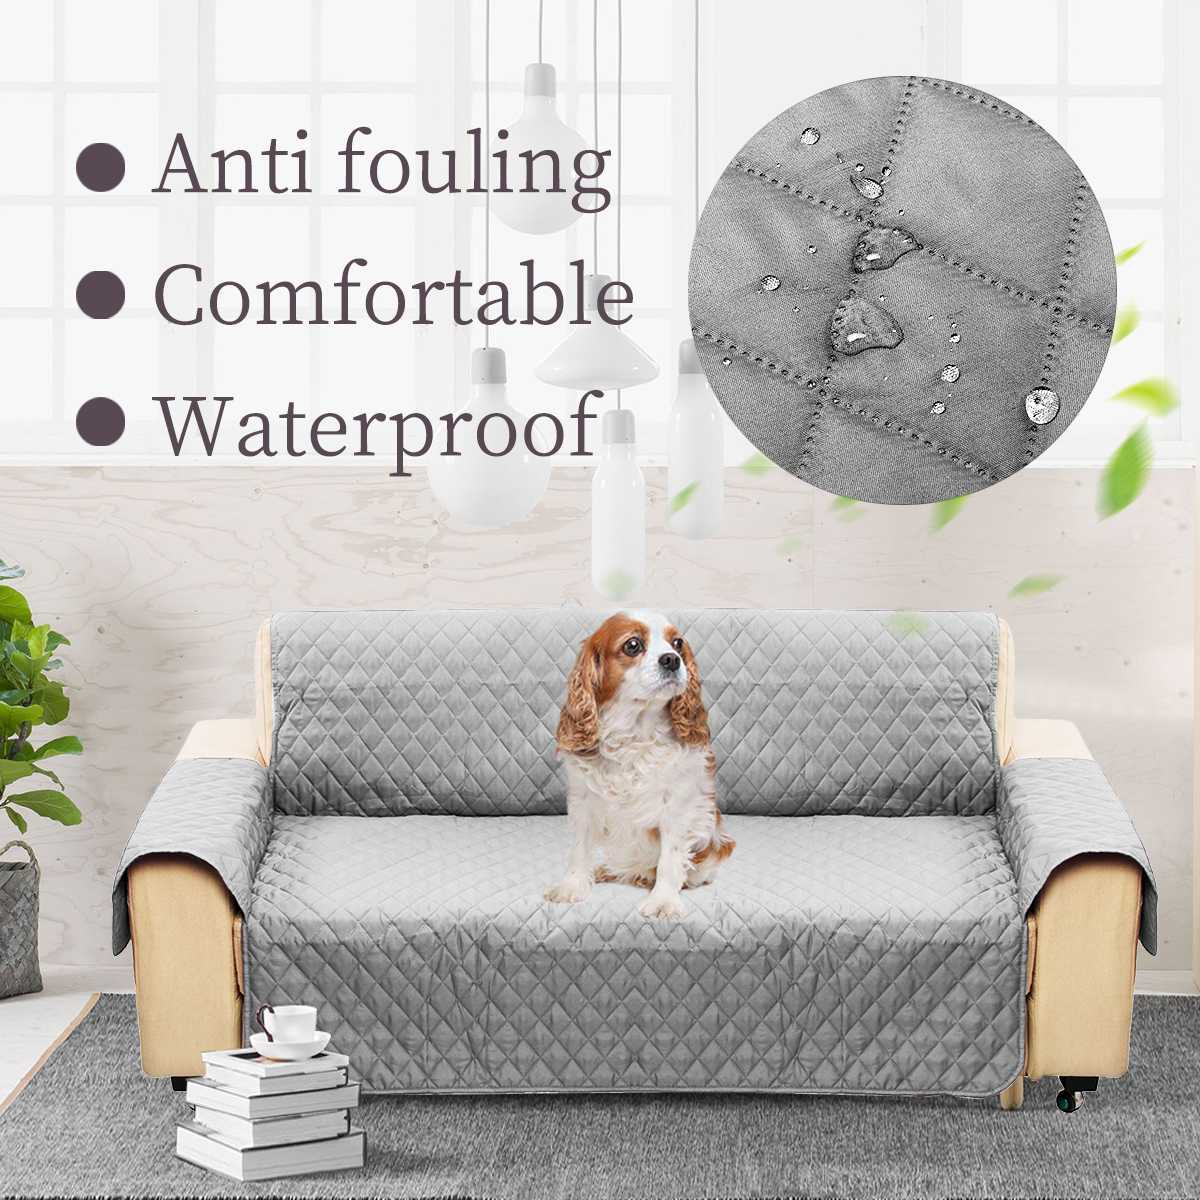 3 Seat Slipcover Couch Protective Cover Removable W/Strap Waterproof For Dog Cat Pet Sofa Non-slip Anti-bite 255x180cm